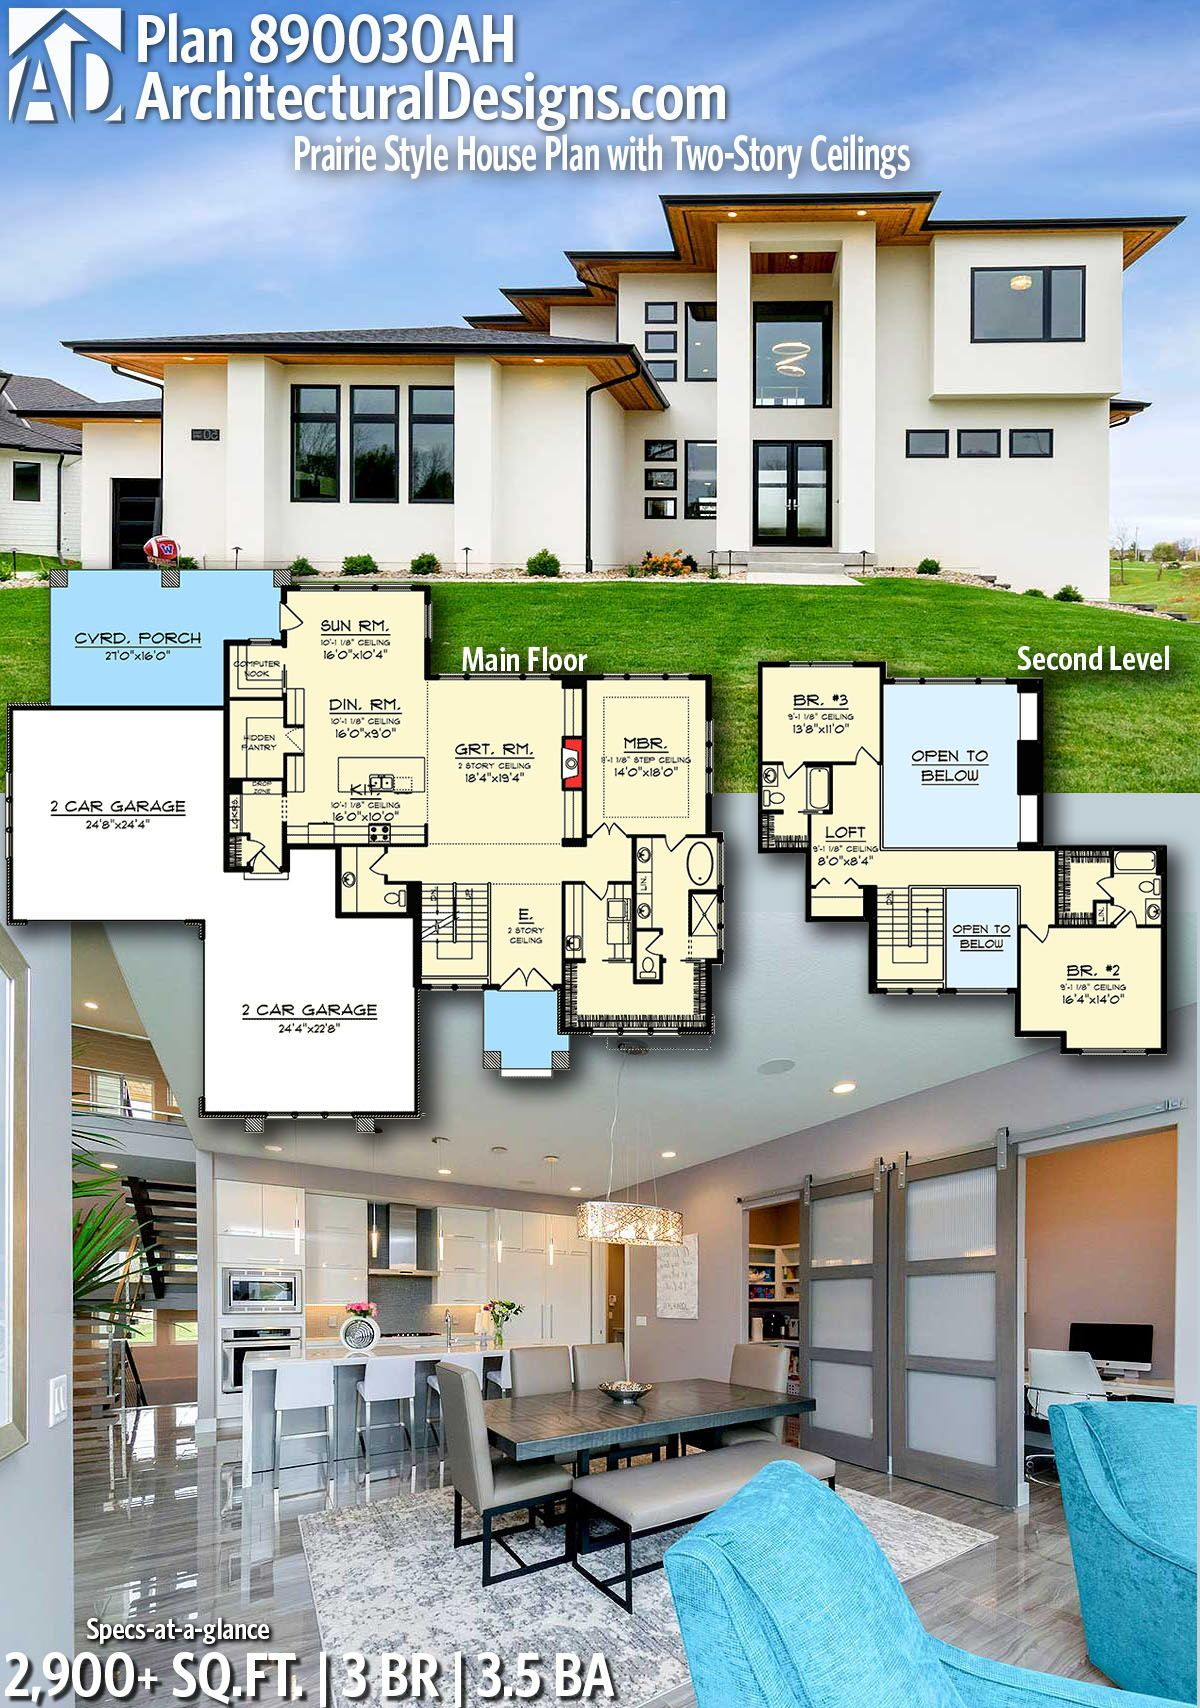 Plan 890030ah Prairie Style House Plan With Two Story Ceilings Prairie Style Houses Modern House Plans House Layout Plans